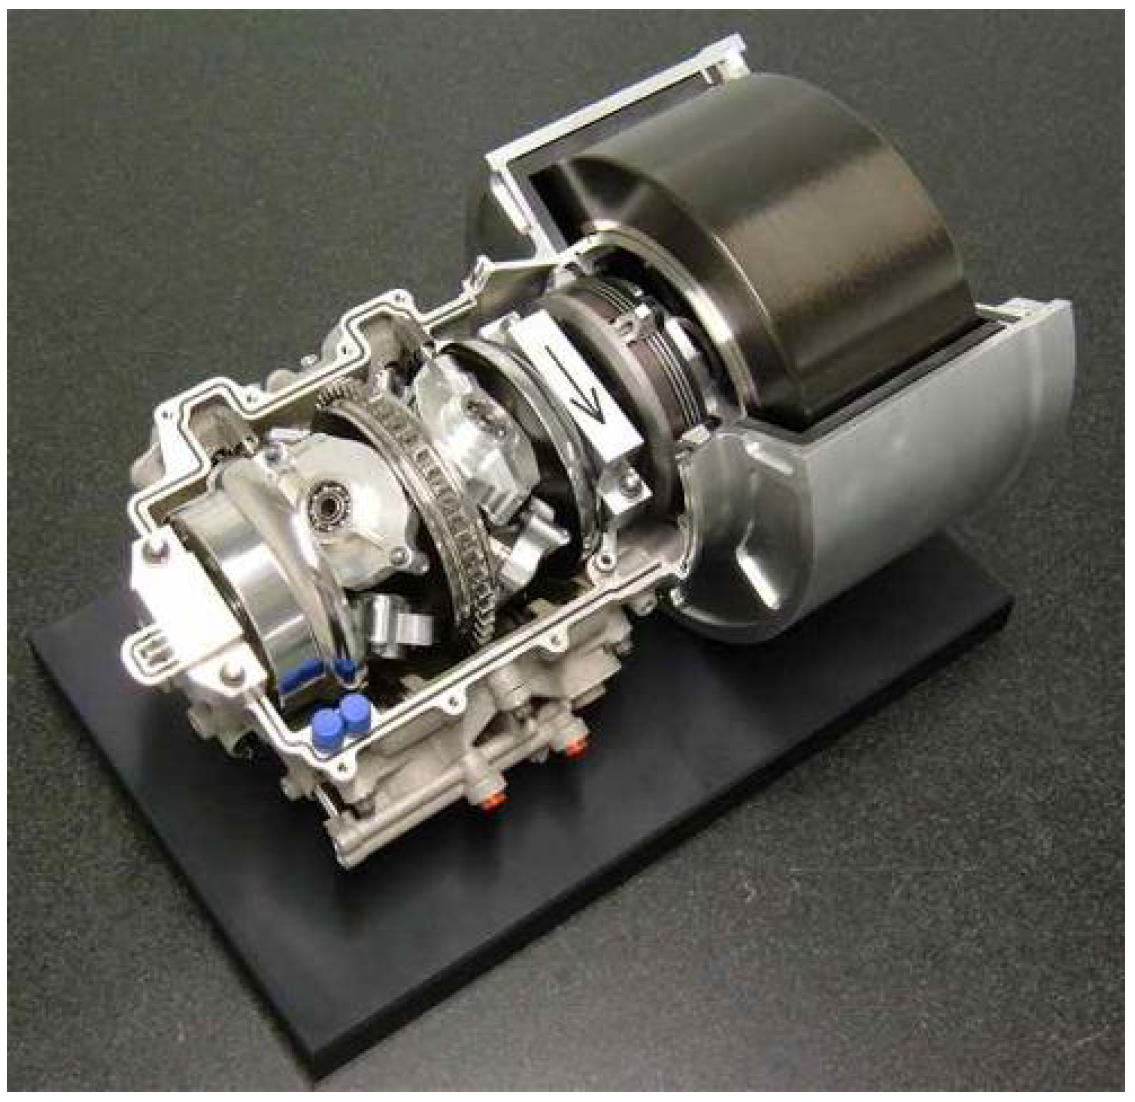 Energies Free Full Text Flywheel Energy Storage For Automotive Applications Html